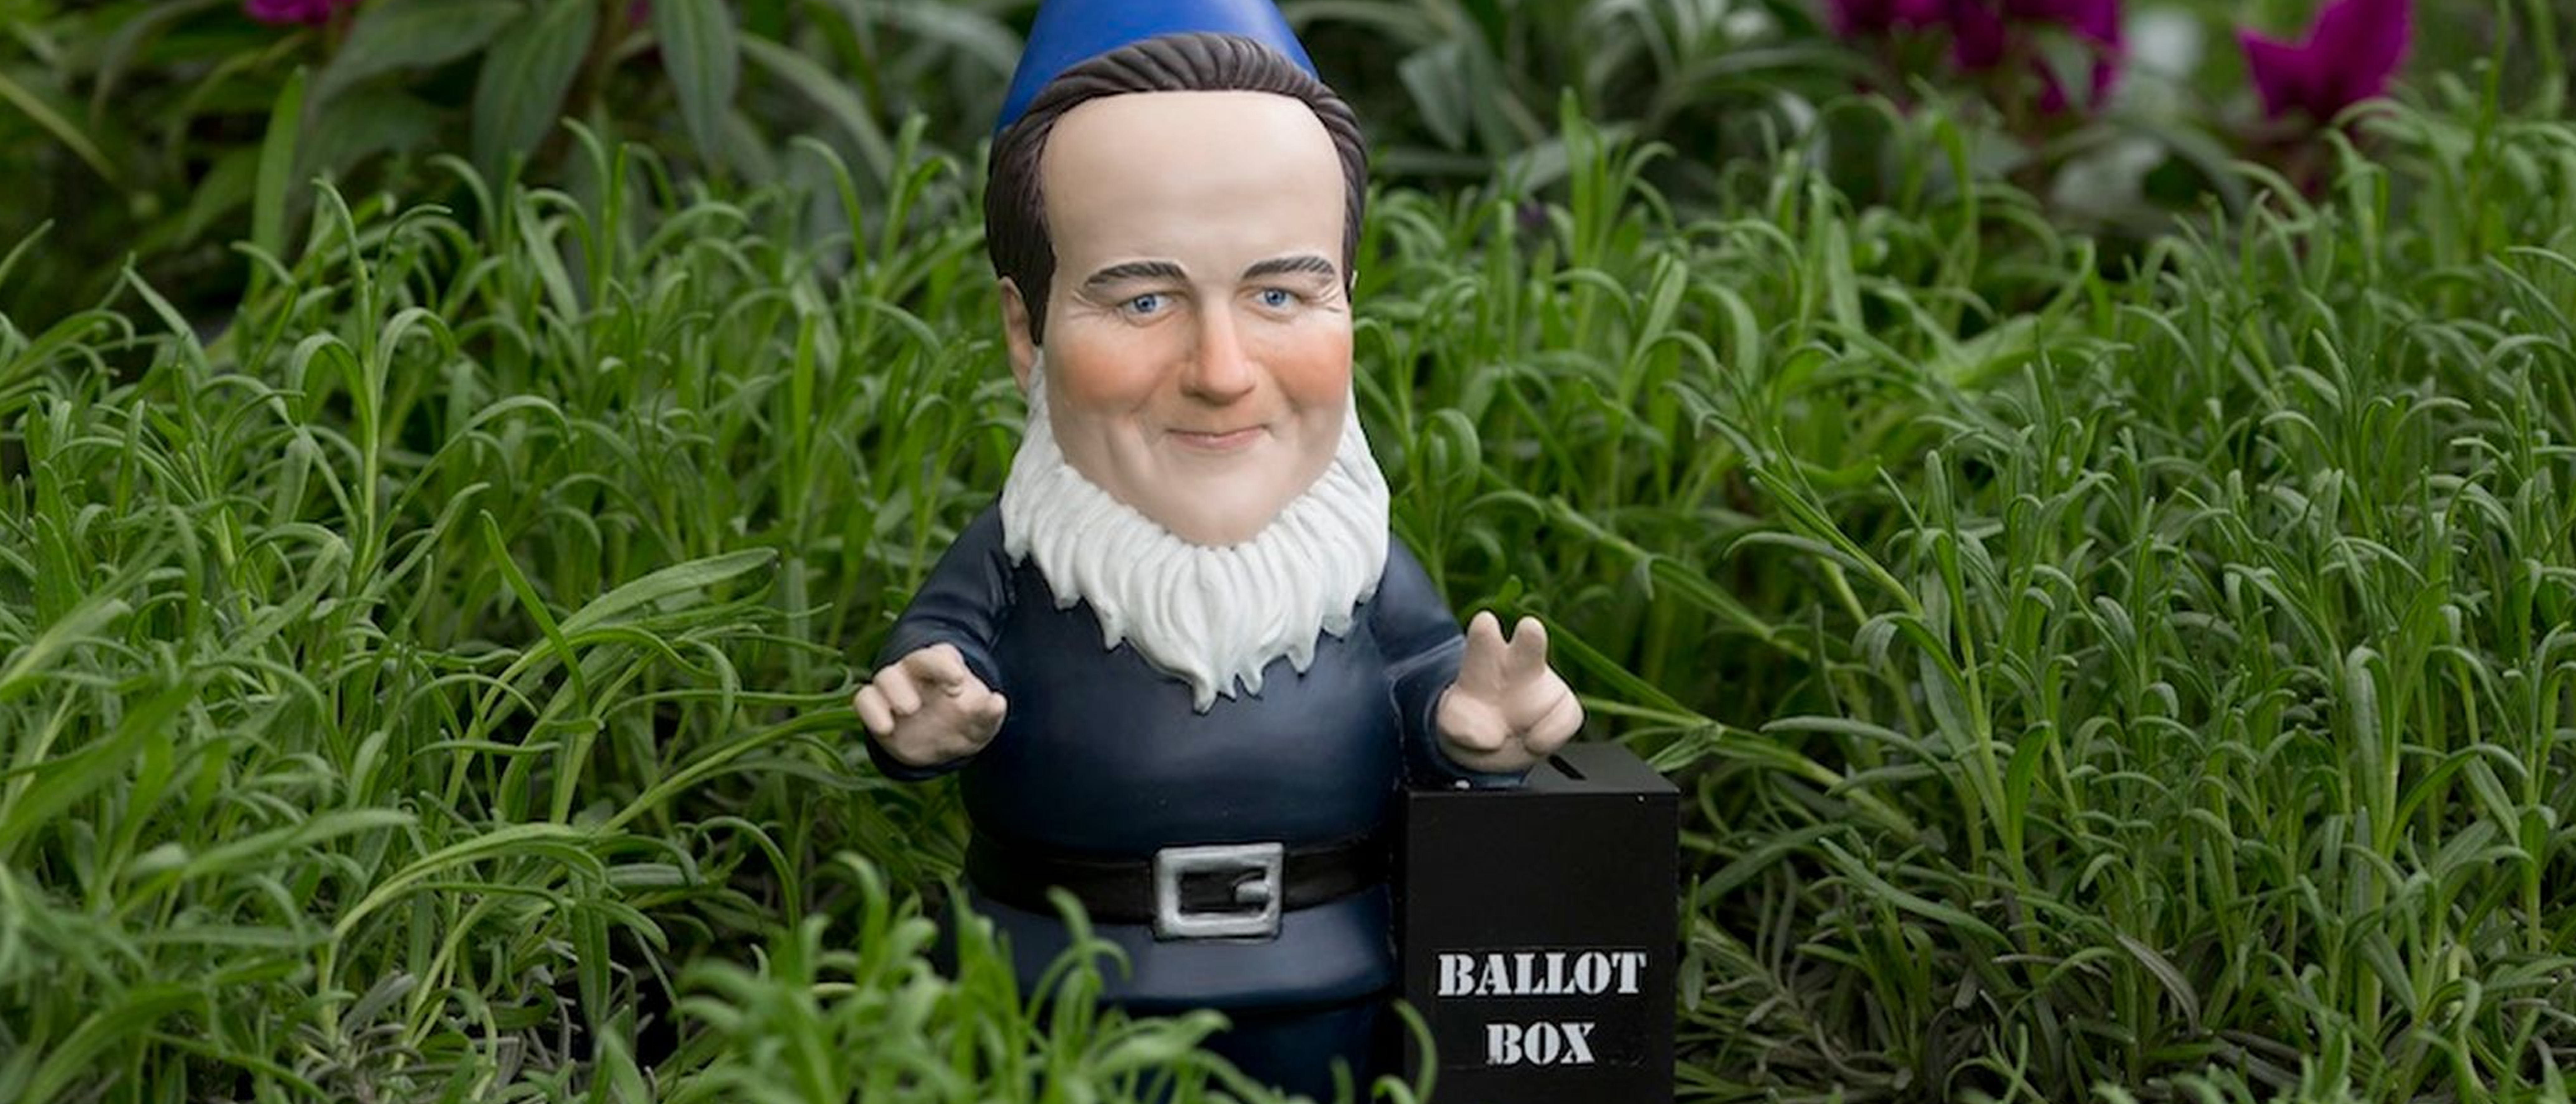 sculptworks general election 2015 gnomes 05